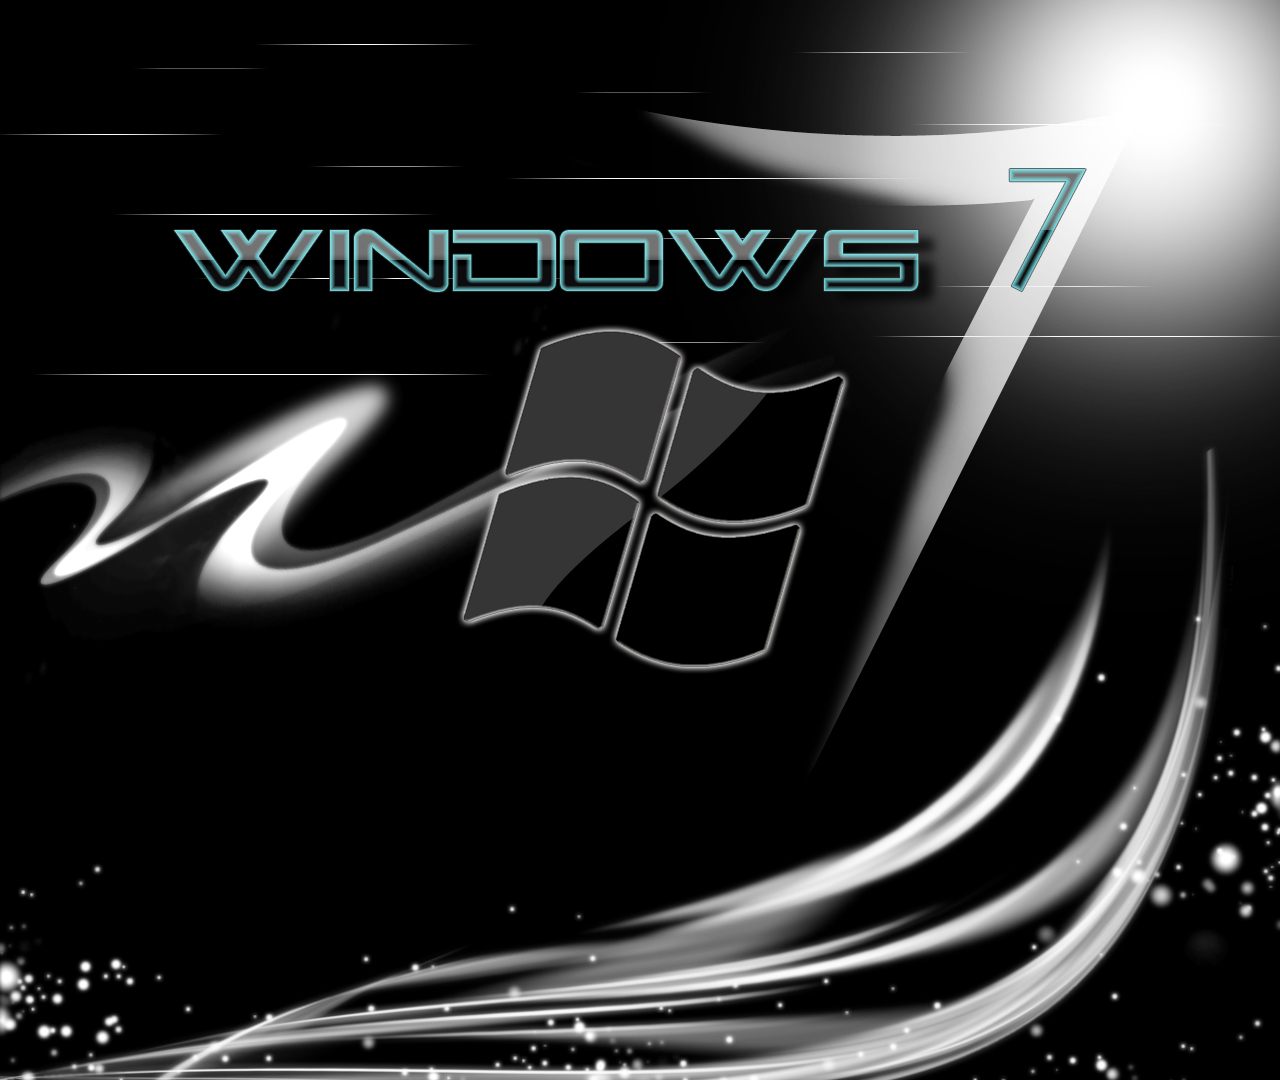 Windows 7 Black Wallpaper Posted By John Anderson